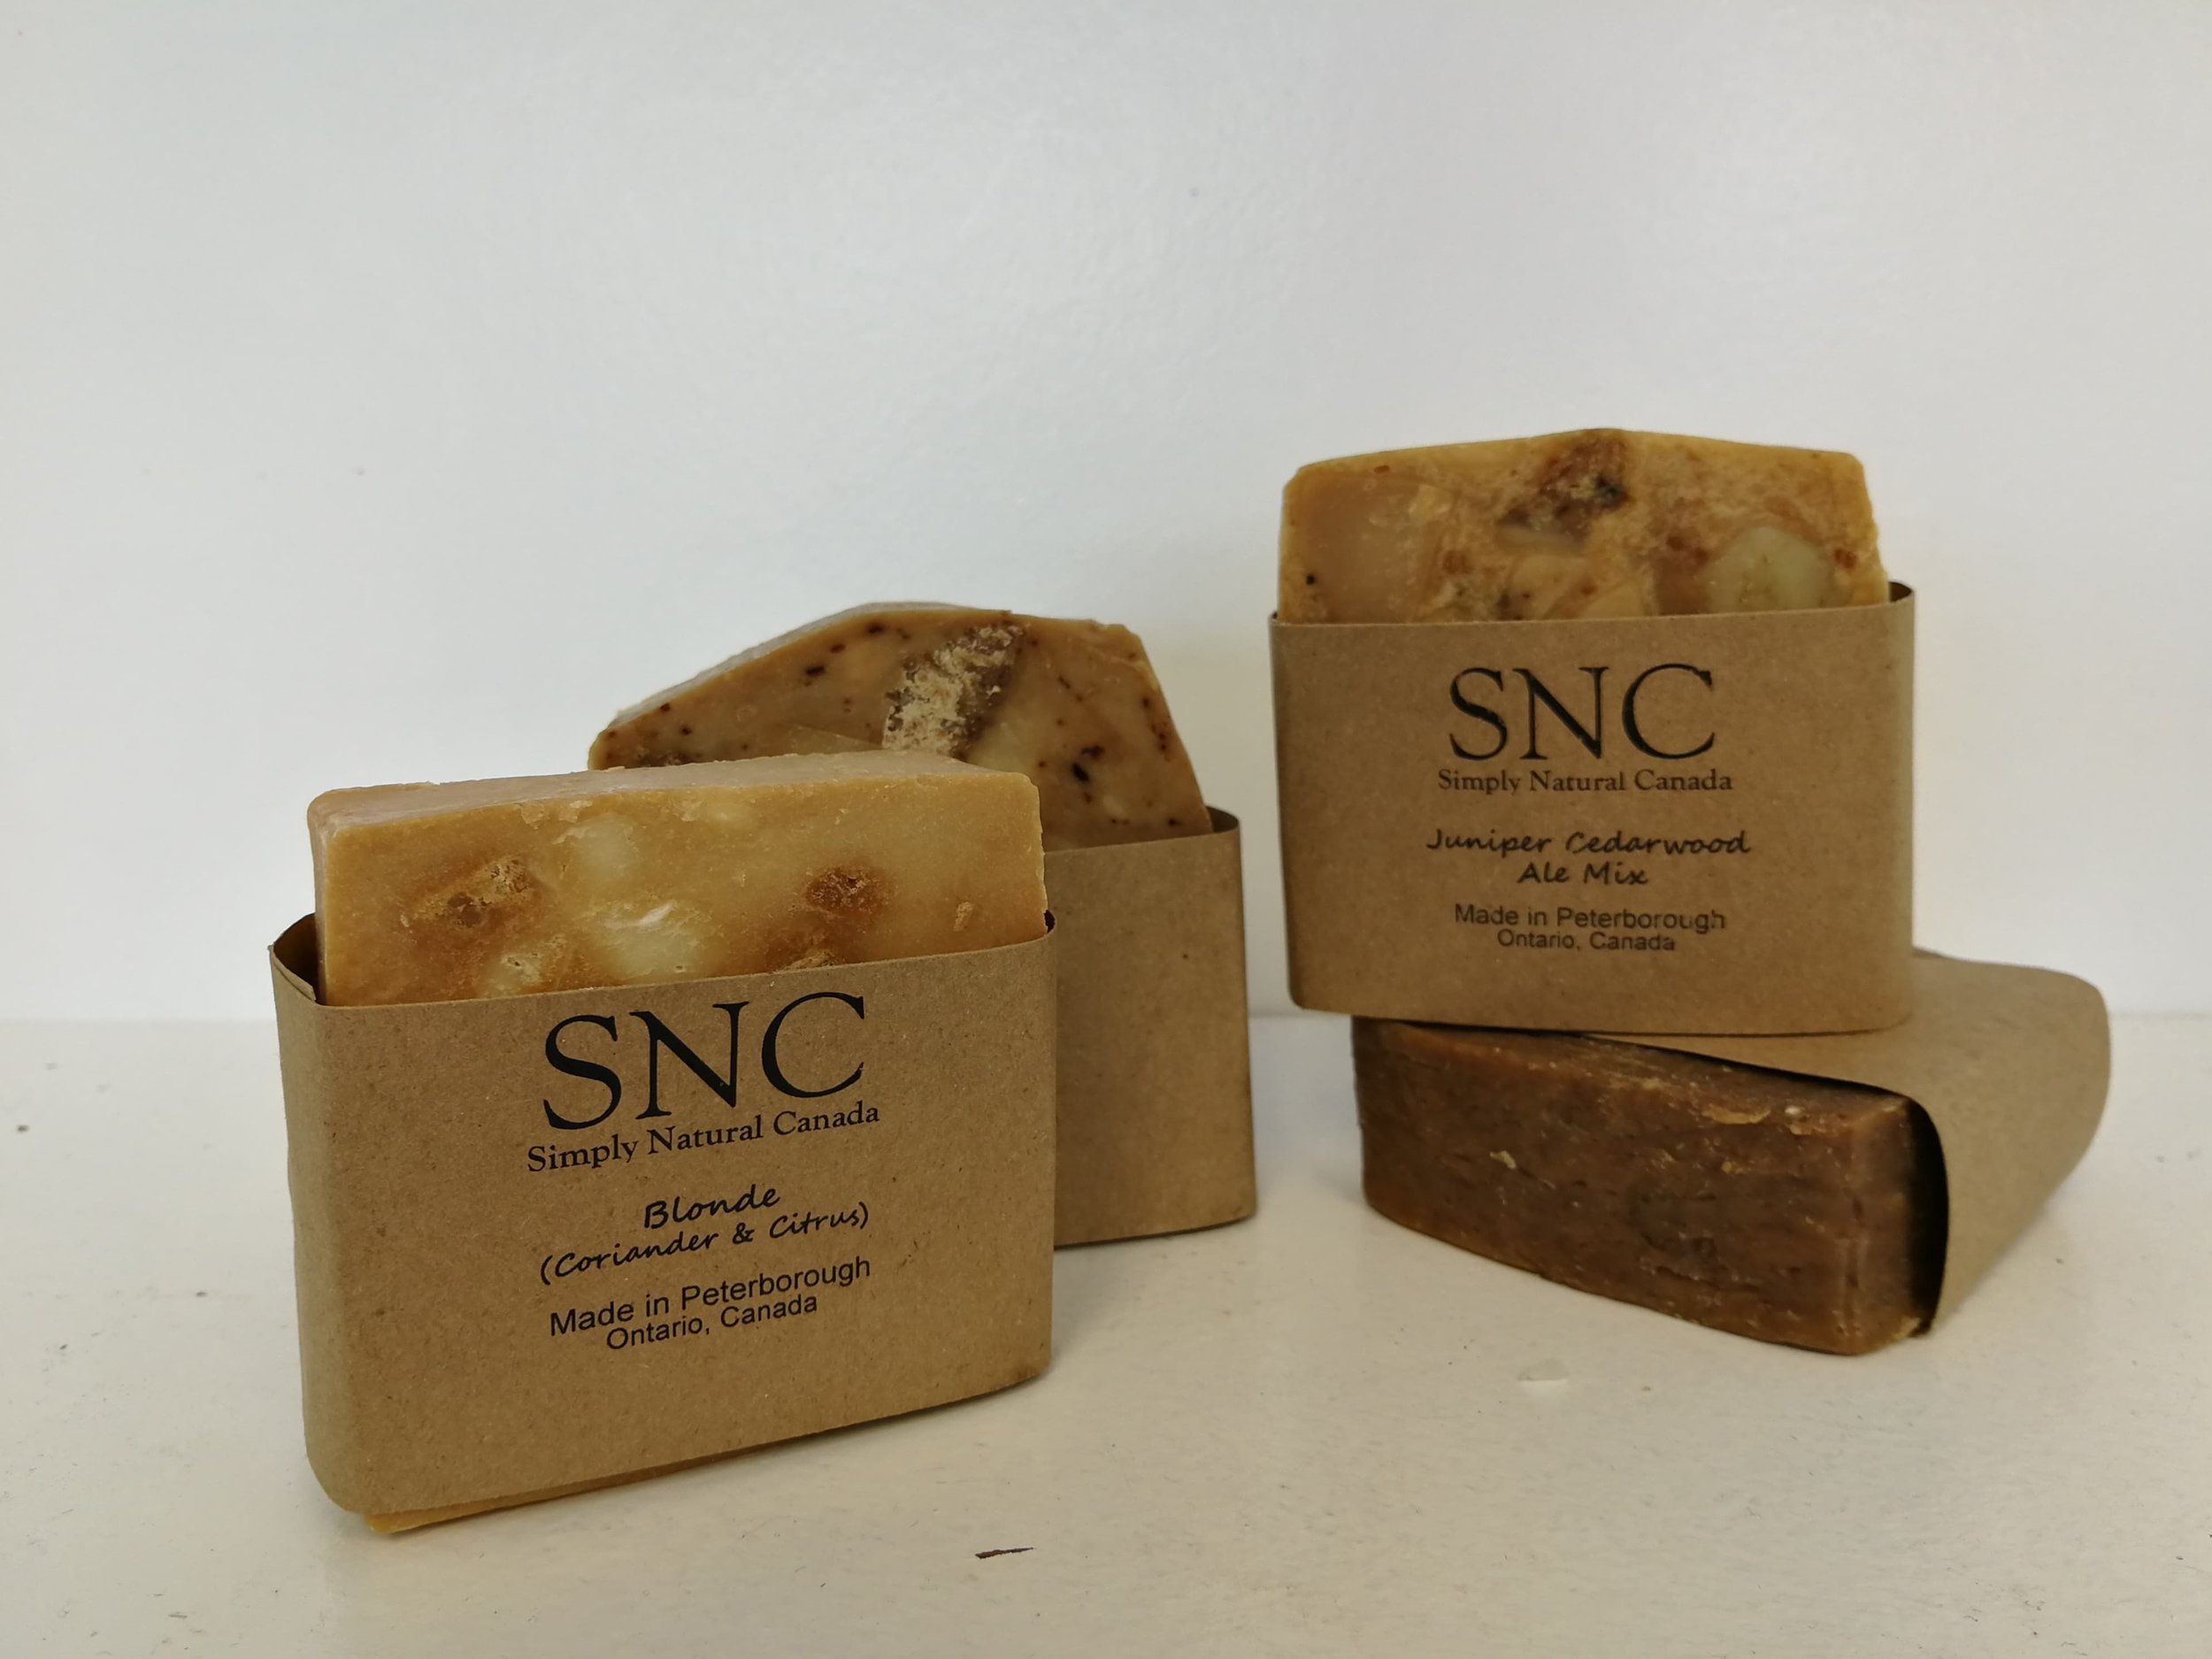 Simply Natural Canada has some amazing slices of soap in delicious scents that are sure to please the Dad in your life!  Beer + Soap = Dadlicious!